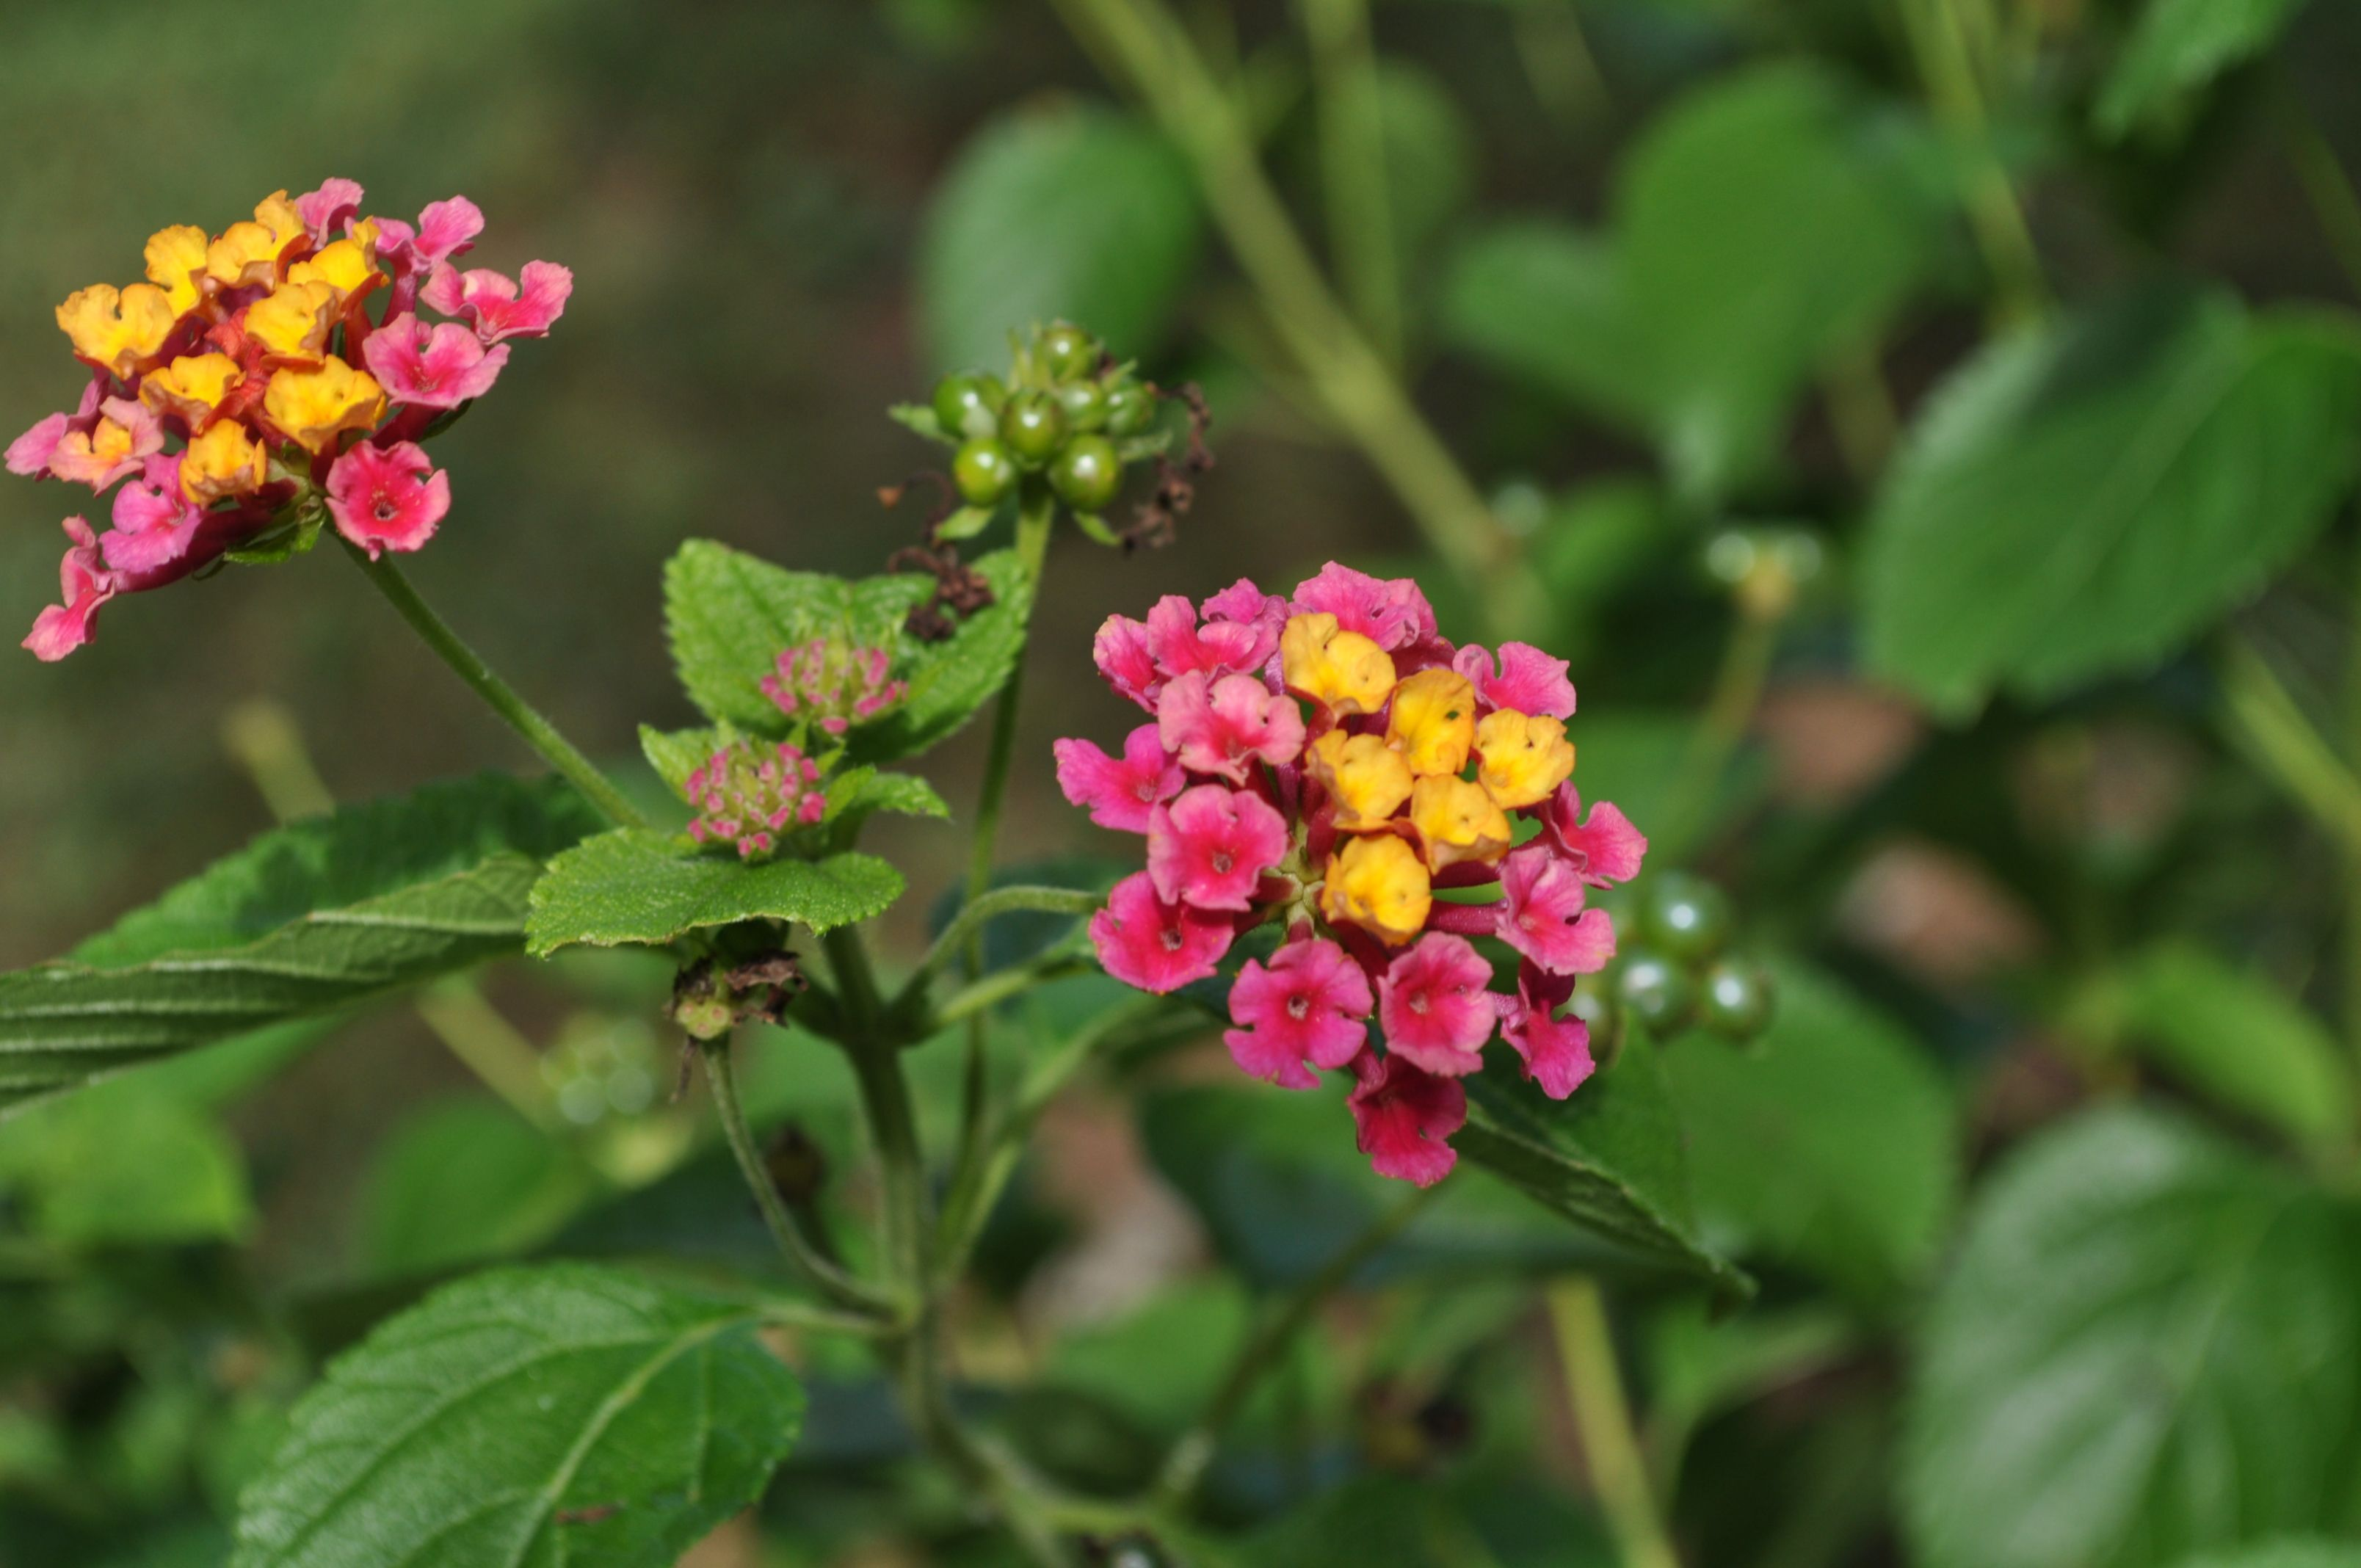 Lantana Lantana Camara View This Specimen In The Gardens At Old Salem Or Purchase One For Your Garden In The Garden Shop At T Plant Sale Garden Shop Lantana